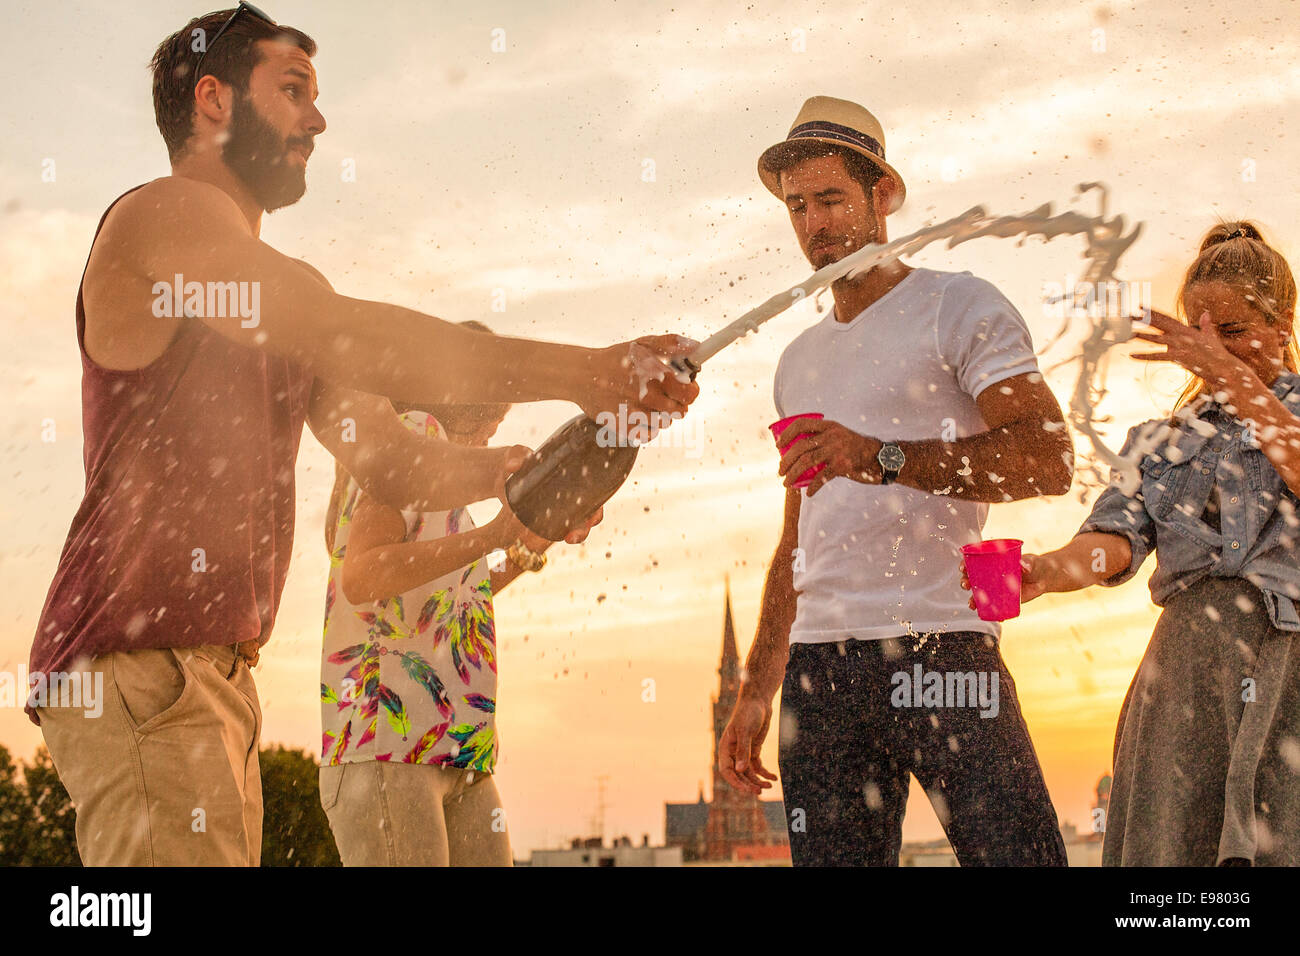 Les jeunes at rooftop party fricoter Photo Stock